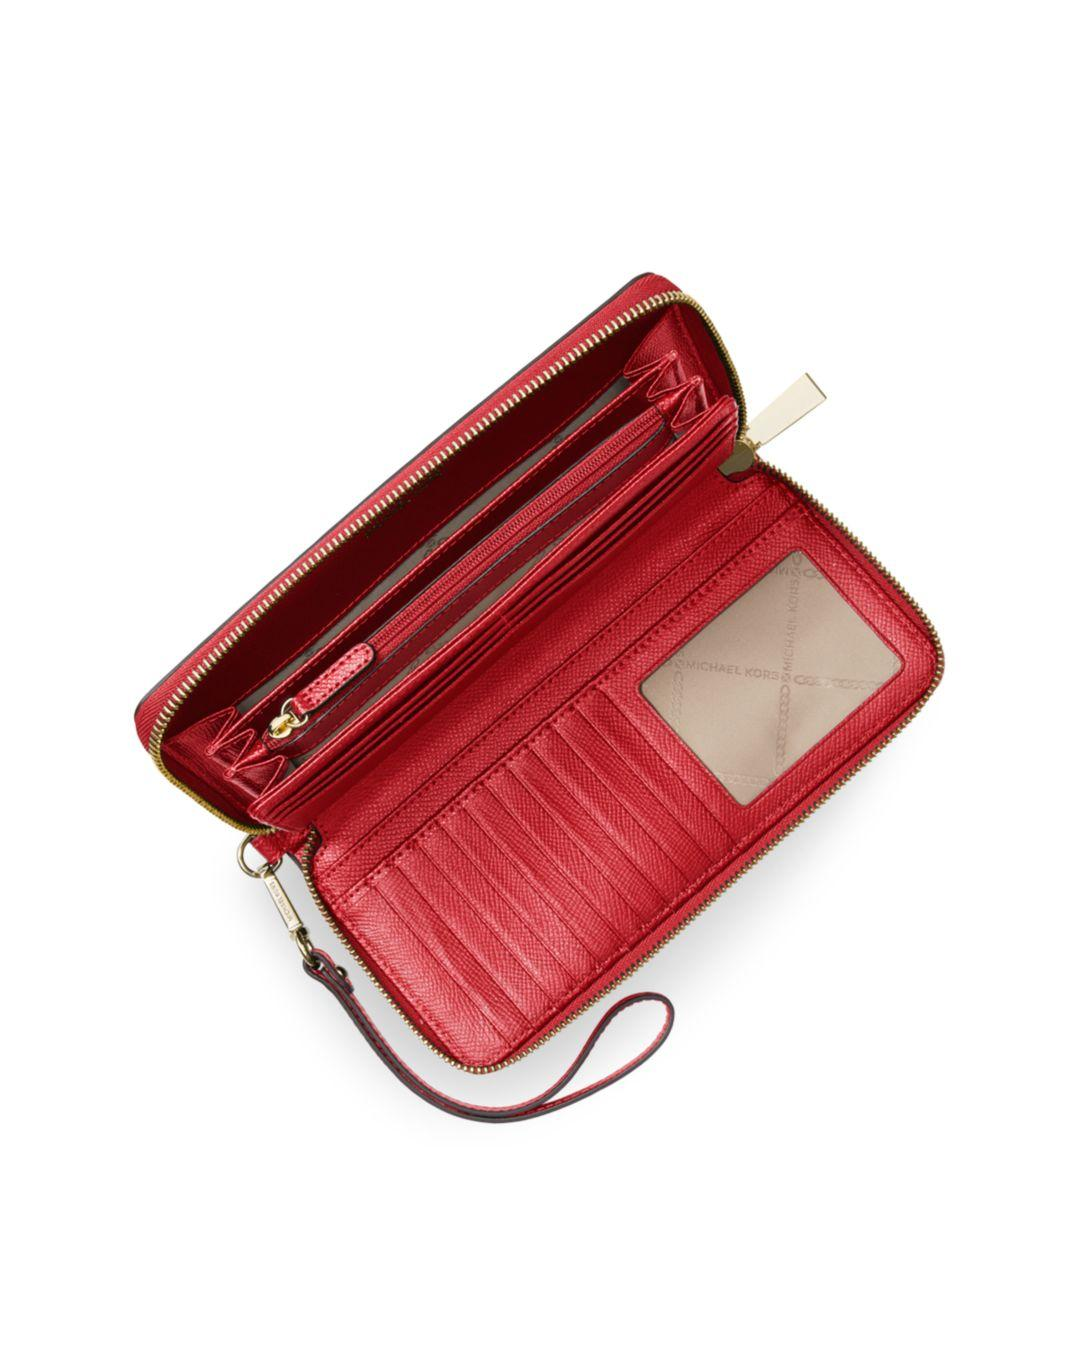 dcc40910d4a4 MICHAEL Michael Kors Wallet - Jet Set Travel Continental Saffiano in Red -  Lyst